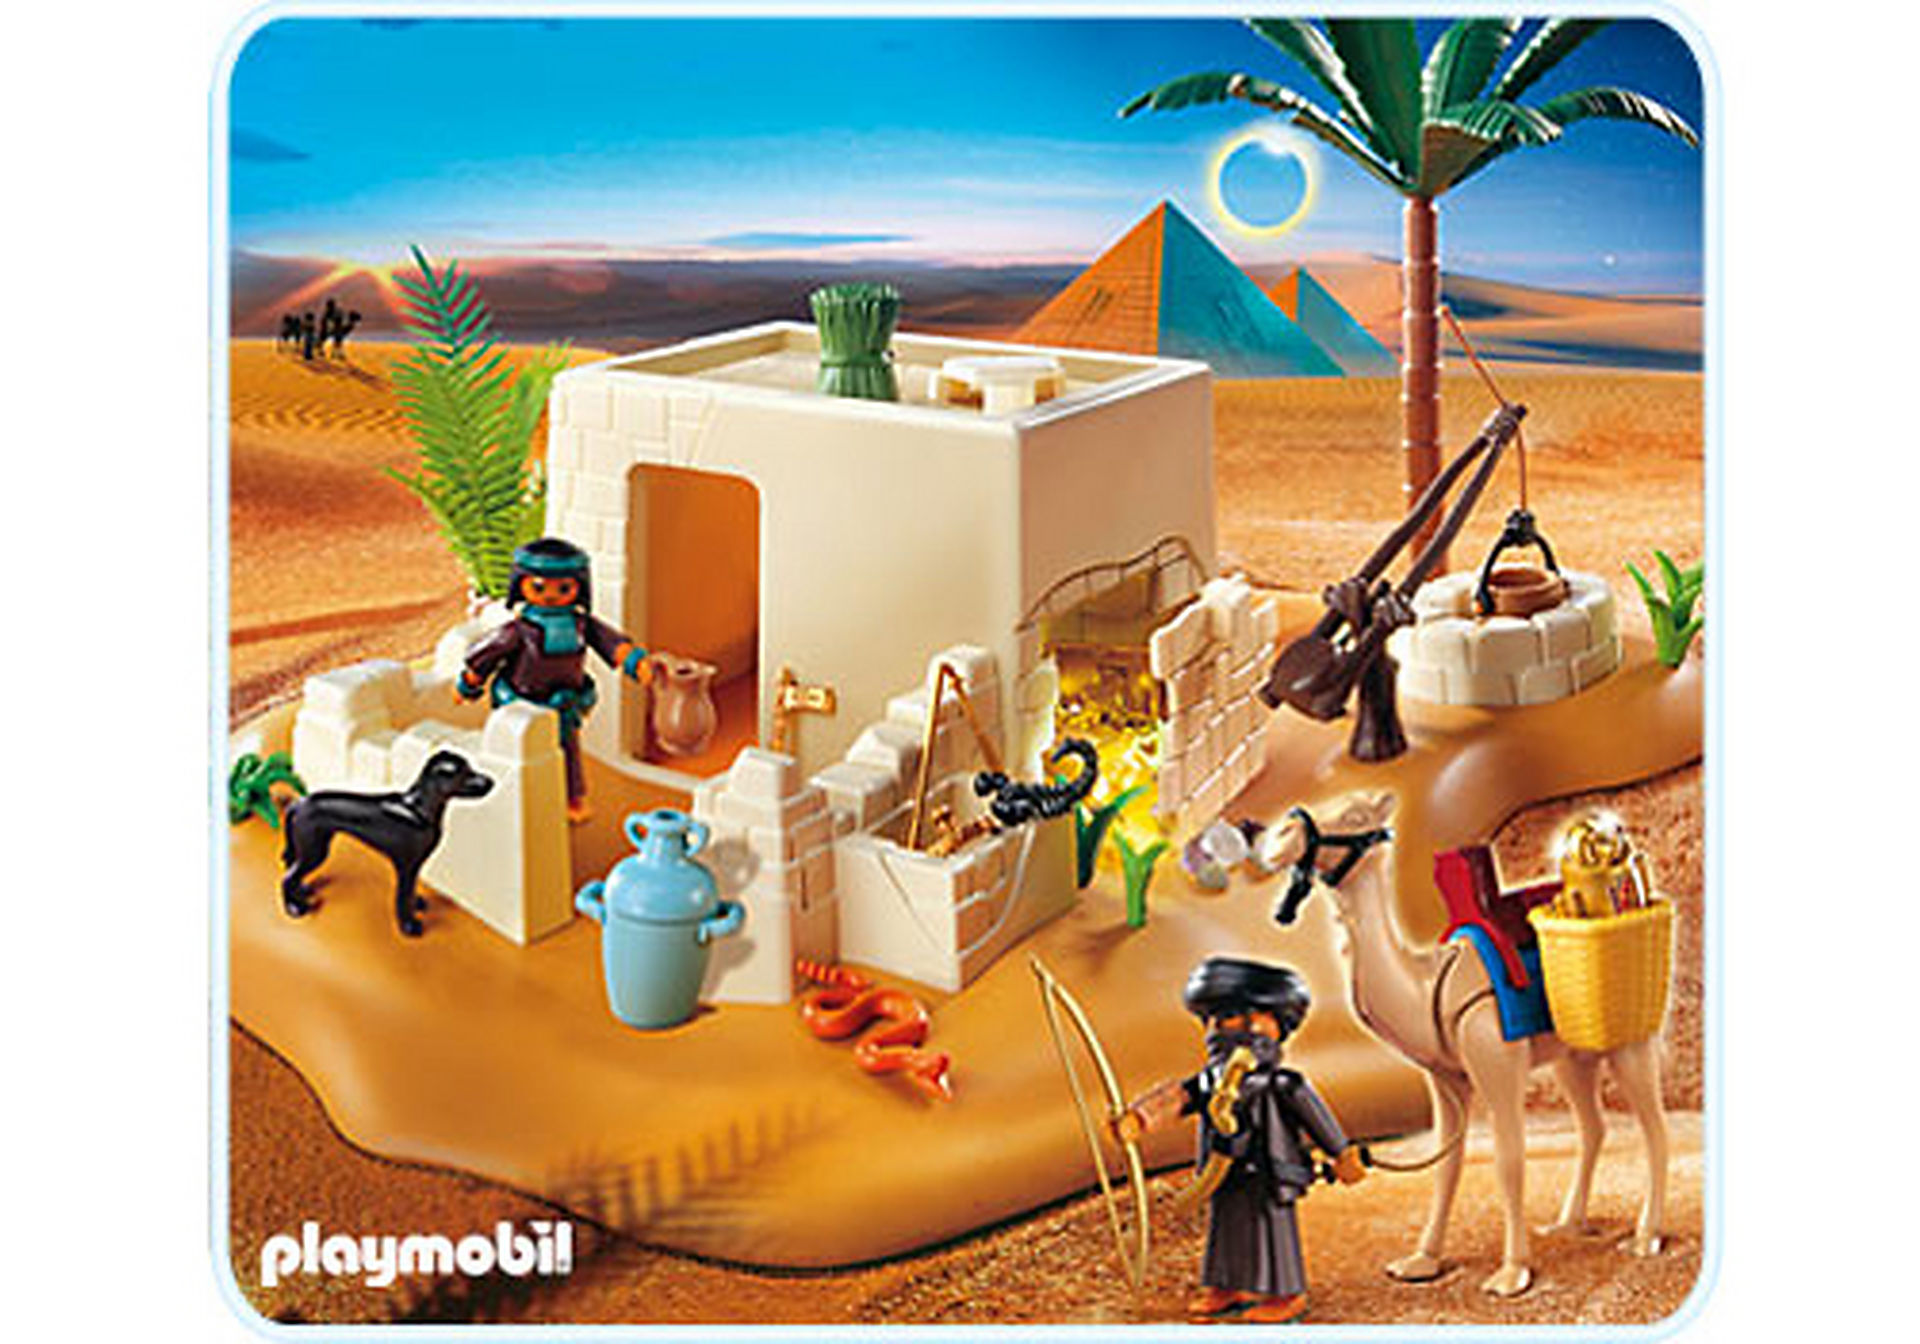 http://media.playmobil.com/i/playmobil/4246-A_product_detail/Pilleurs et cachette